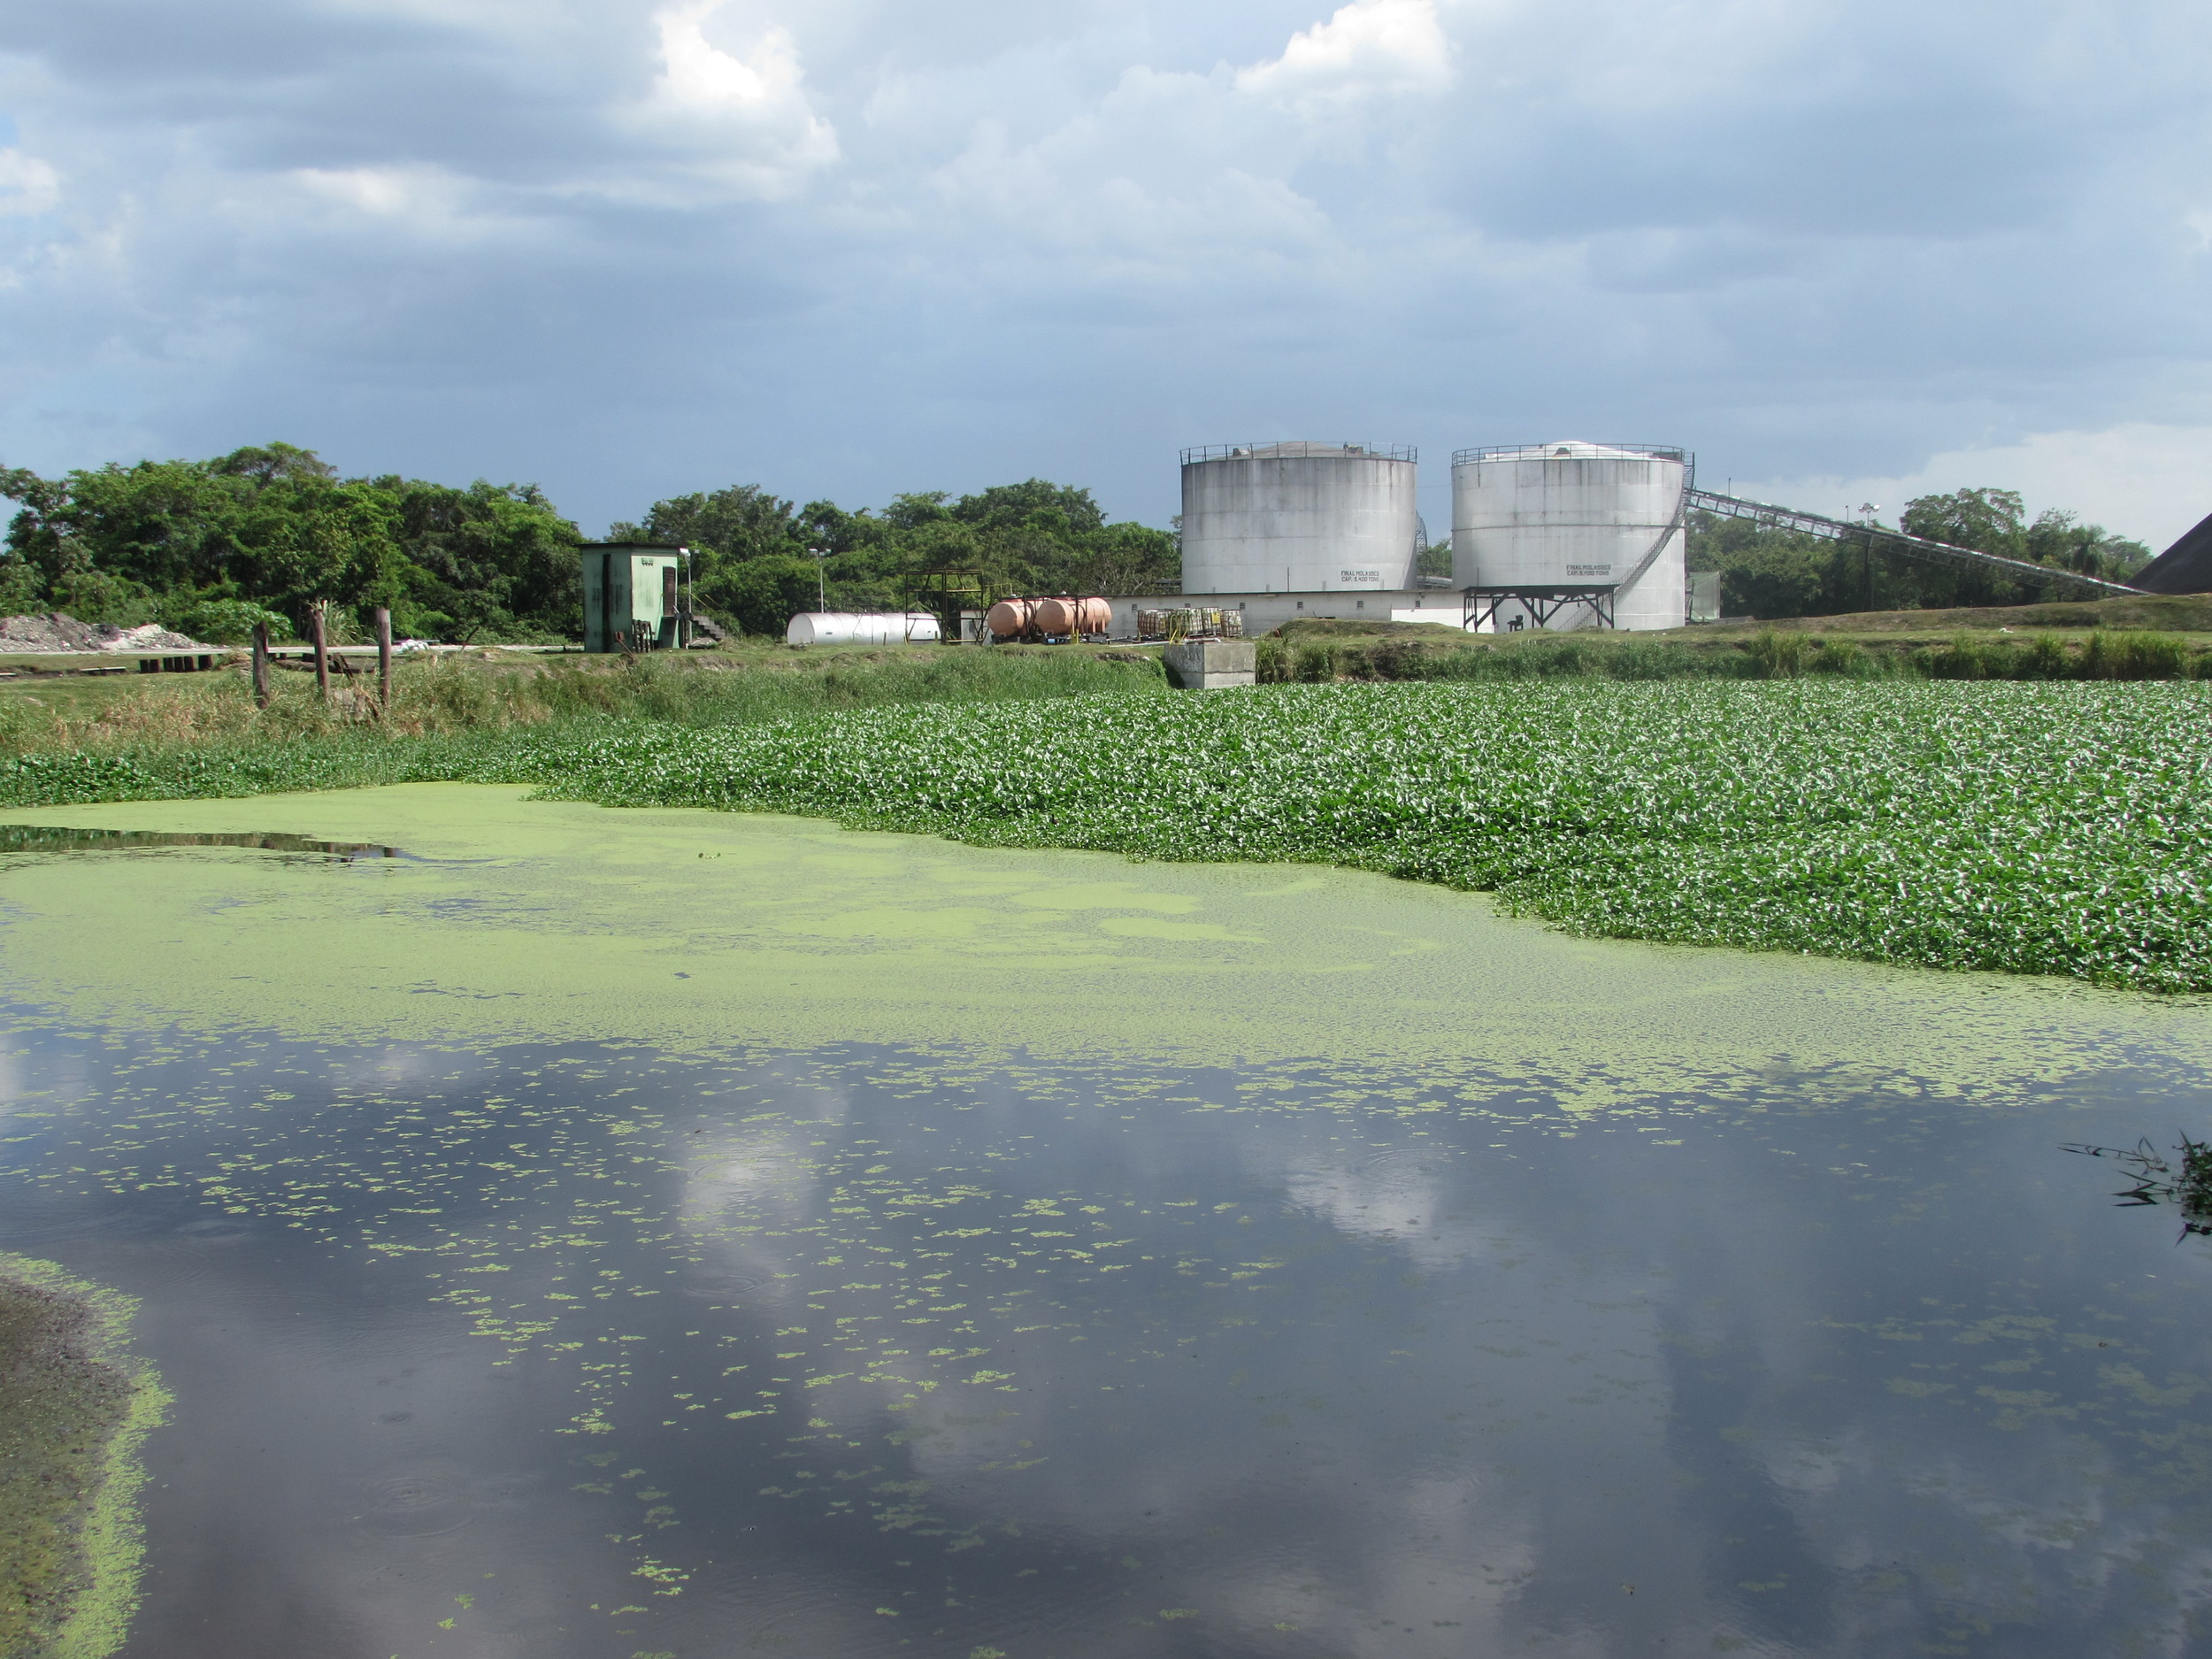 One of the Oxidation Ponds at BSI's Waste Water Treatment System